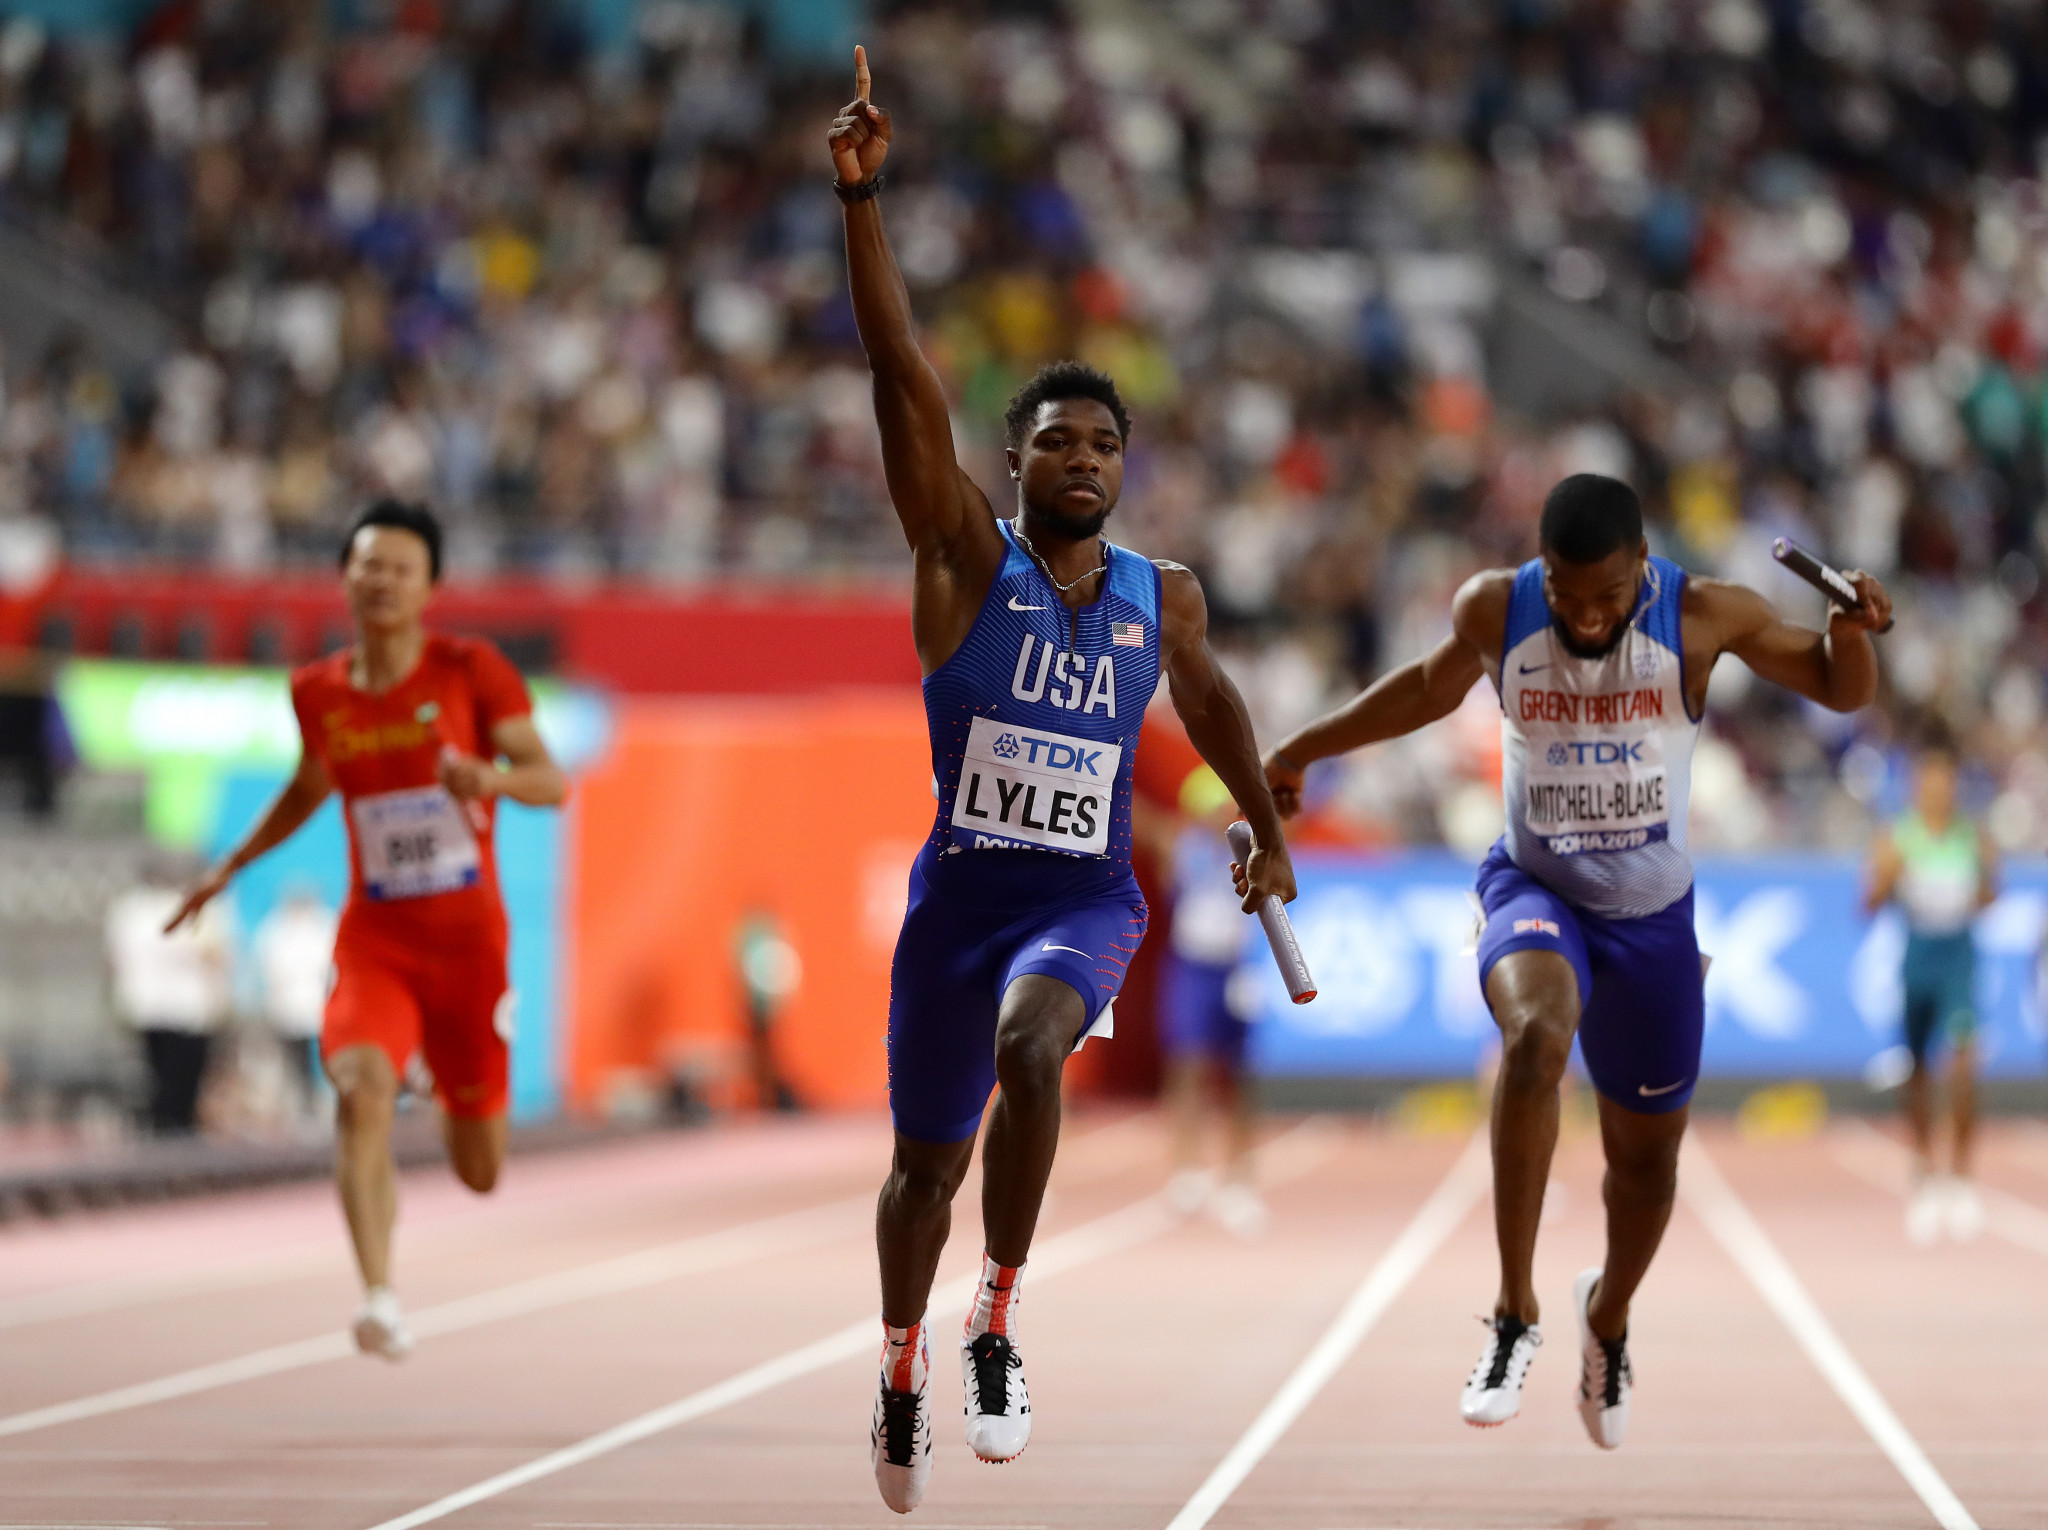 Noah Lyles brings home the baton to earn the United States 4x100m gold at last year's World Athletics Championships, where he also won the 200m title ©Getty Images